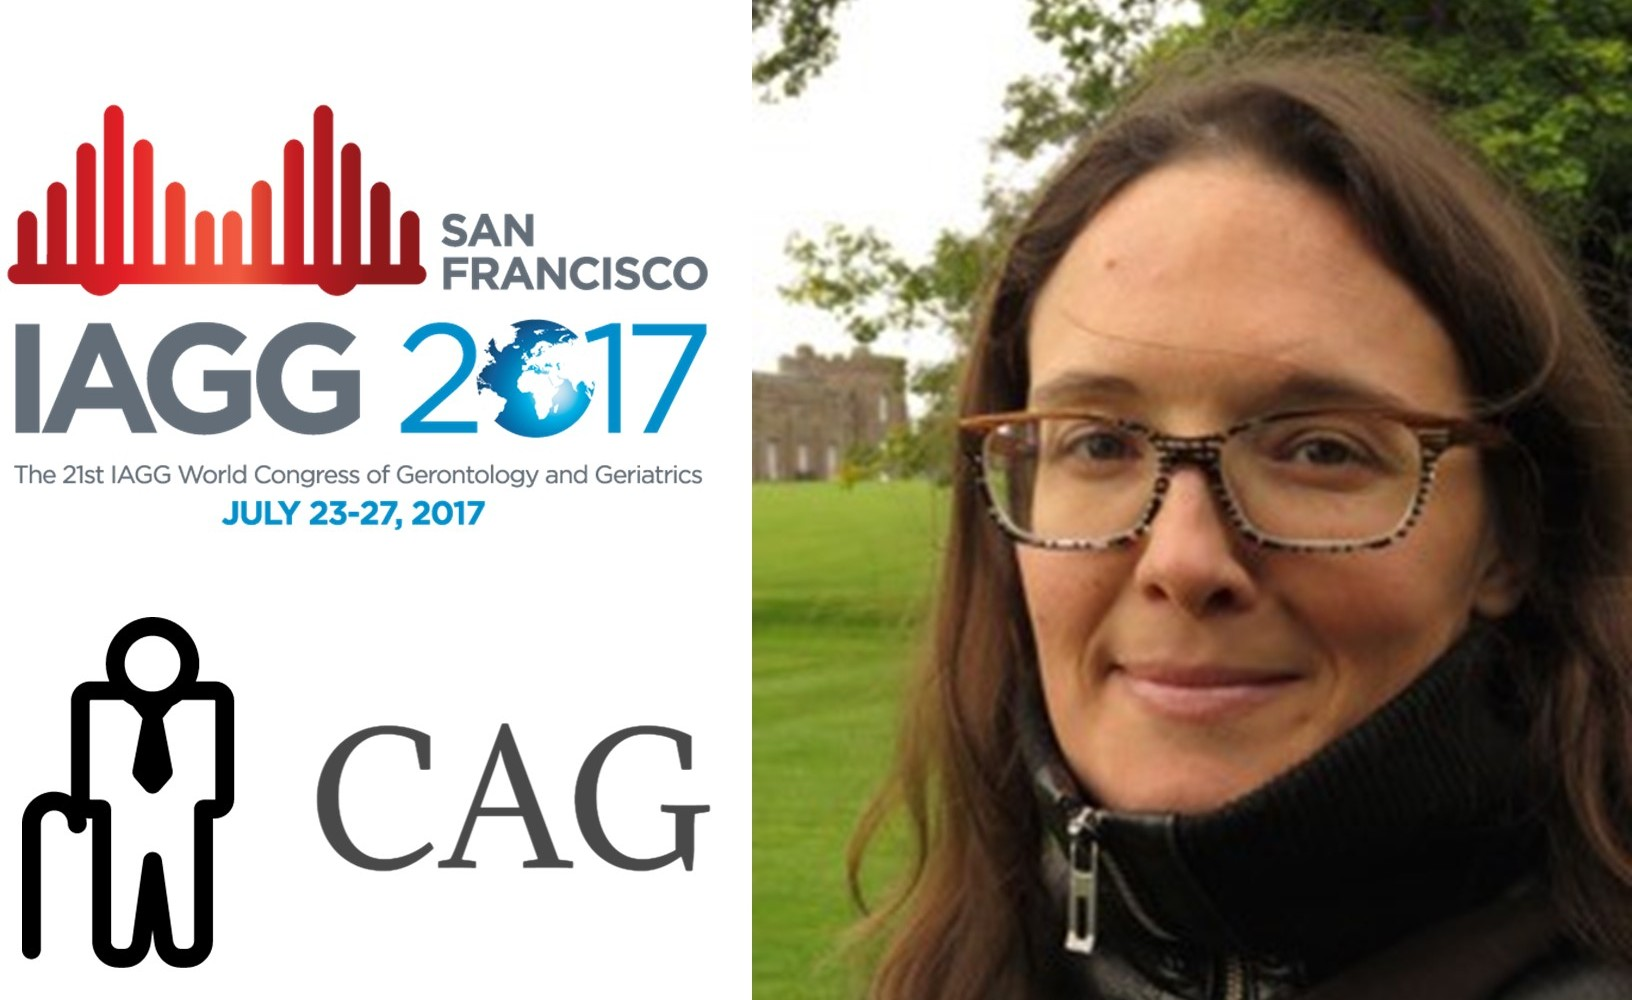 Congradulations to Delphine Labbé for recieving the Travel Grant to attend the IAGG 2017 World Congress!